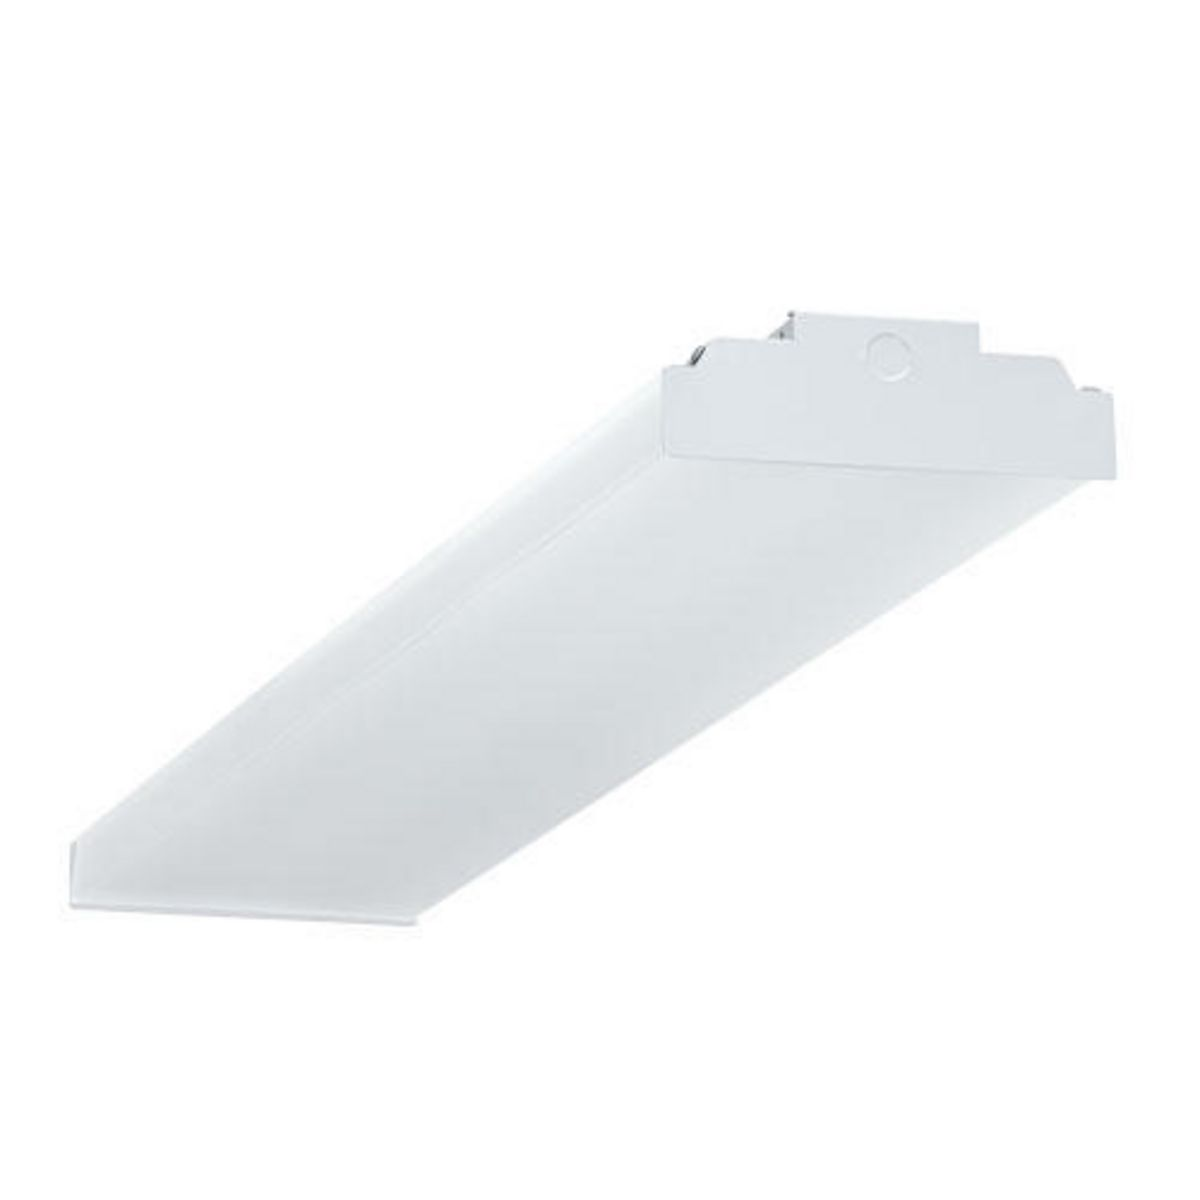 COLUMBIA LIGHTING,CWP4-4035,LED WRAP 4000lm 3500K DIM